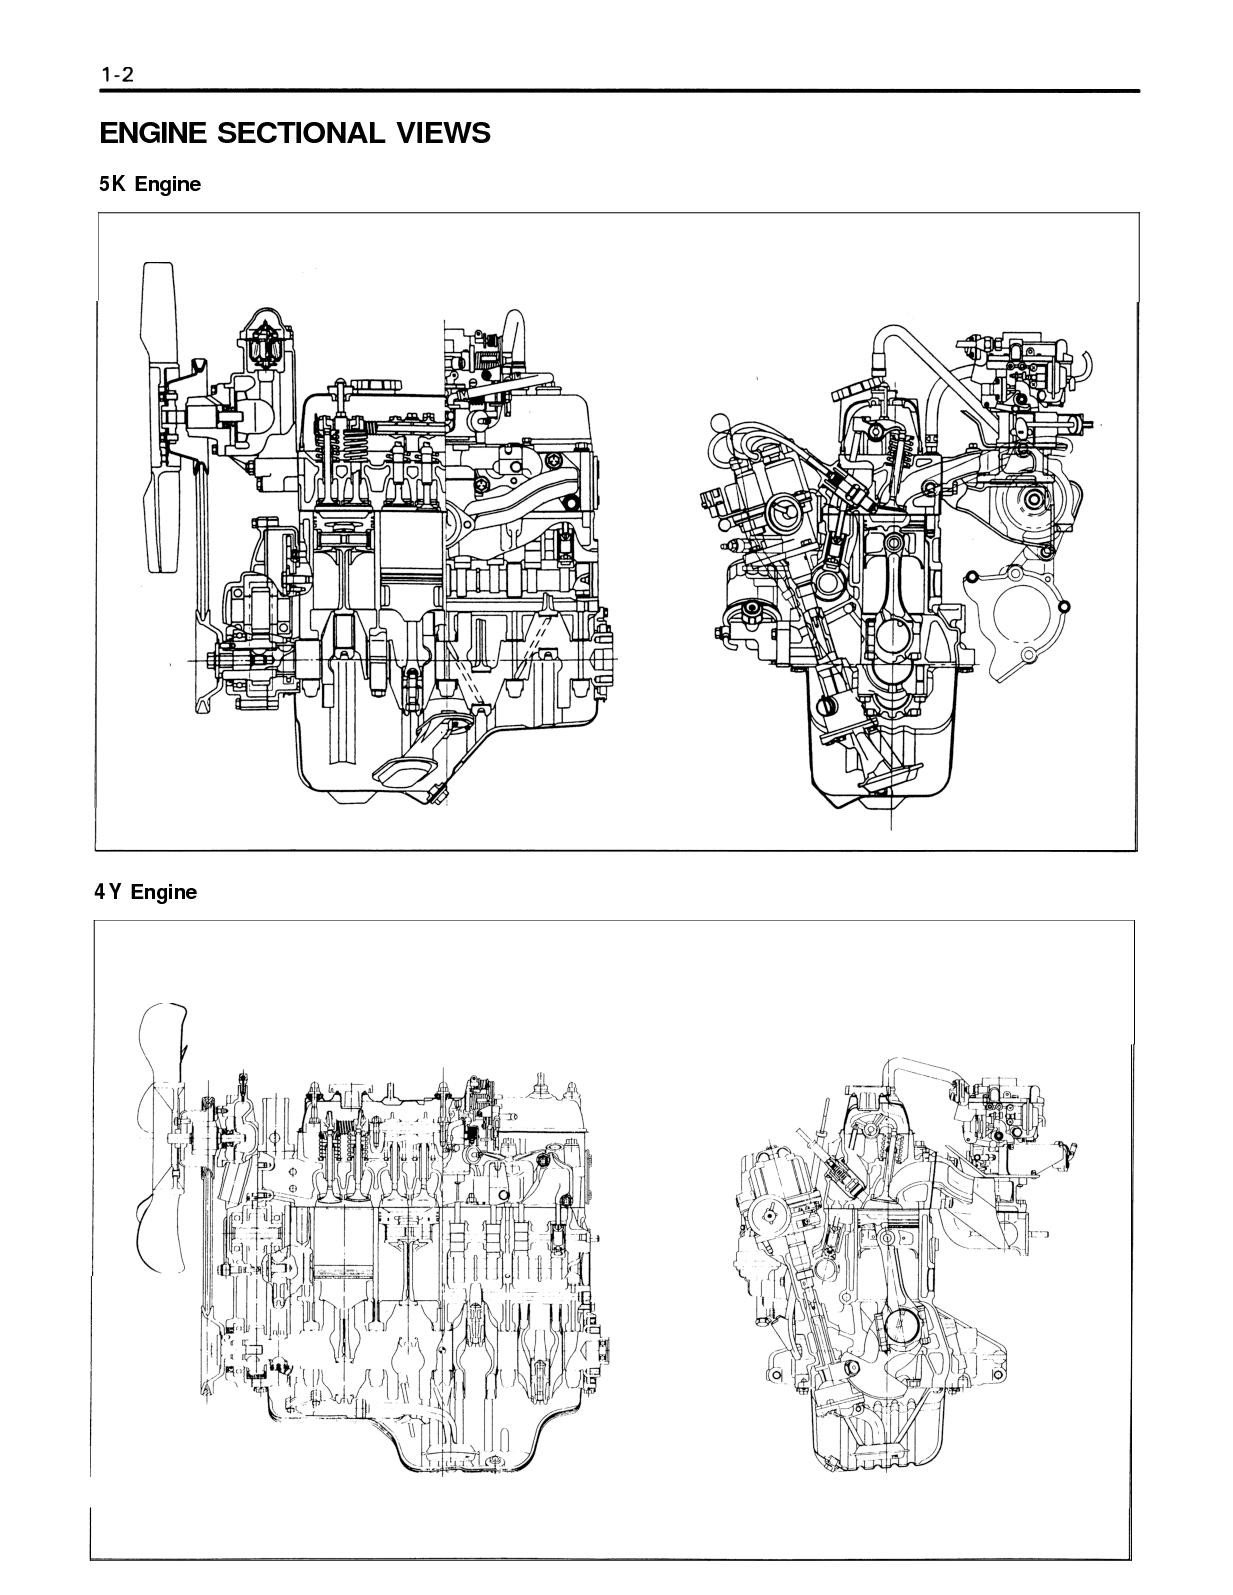 Toyota 5k Engine Diagram toyota 6fd18 forklift Service Repair Manual Calameo Downloader Of Toyota 5k Engine Diagram